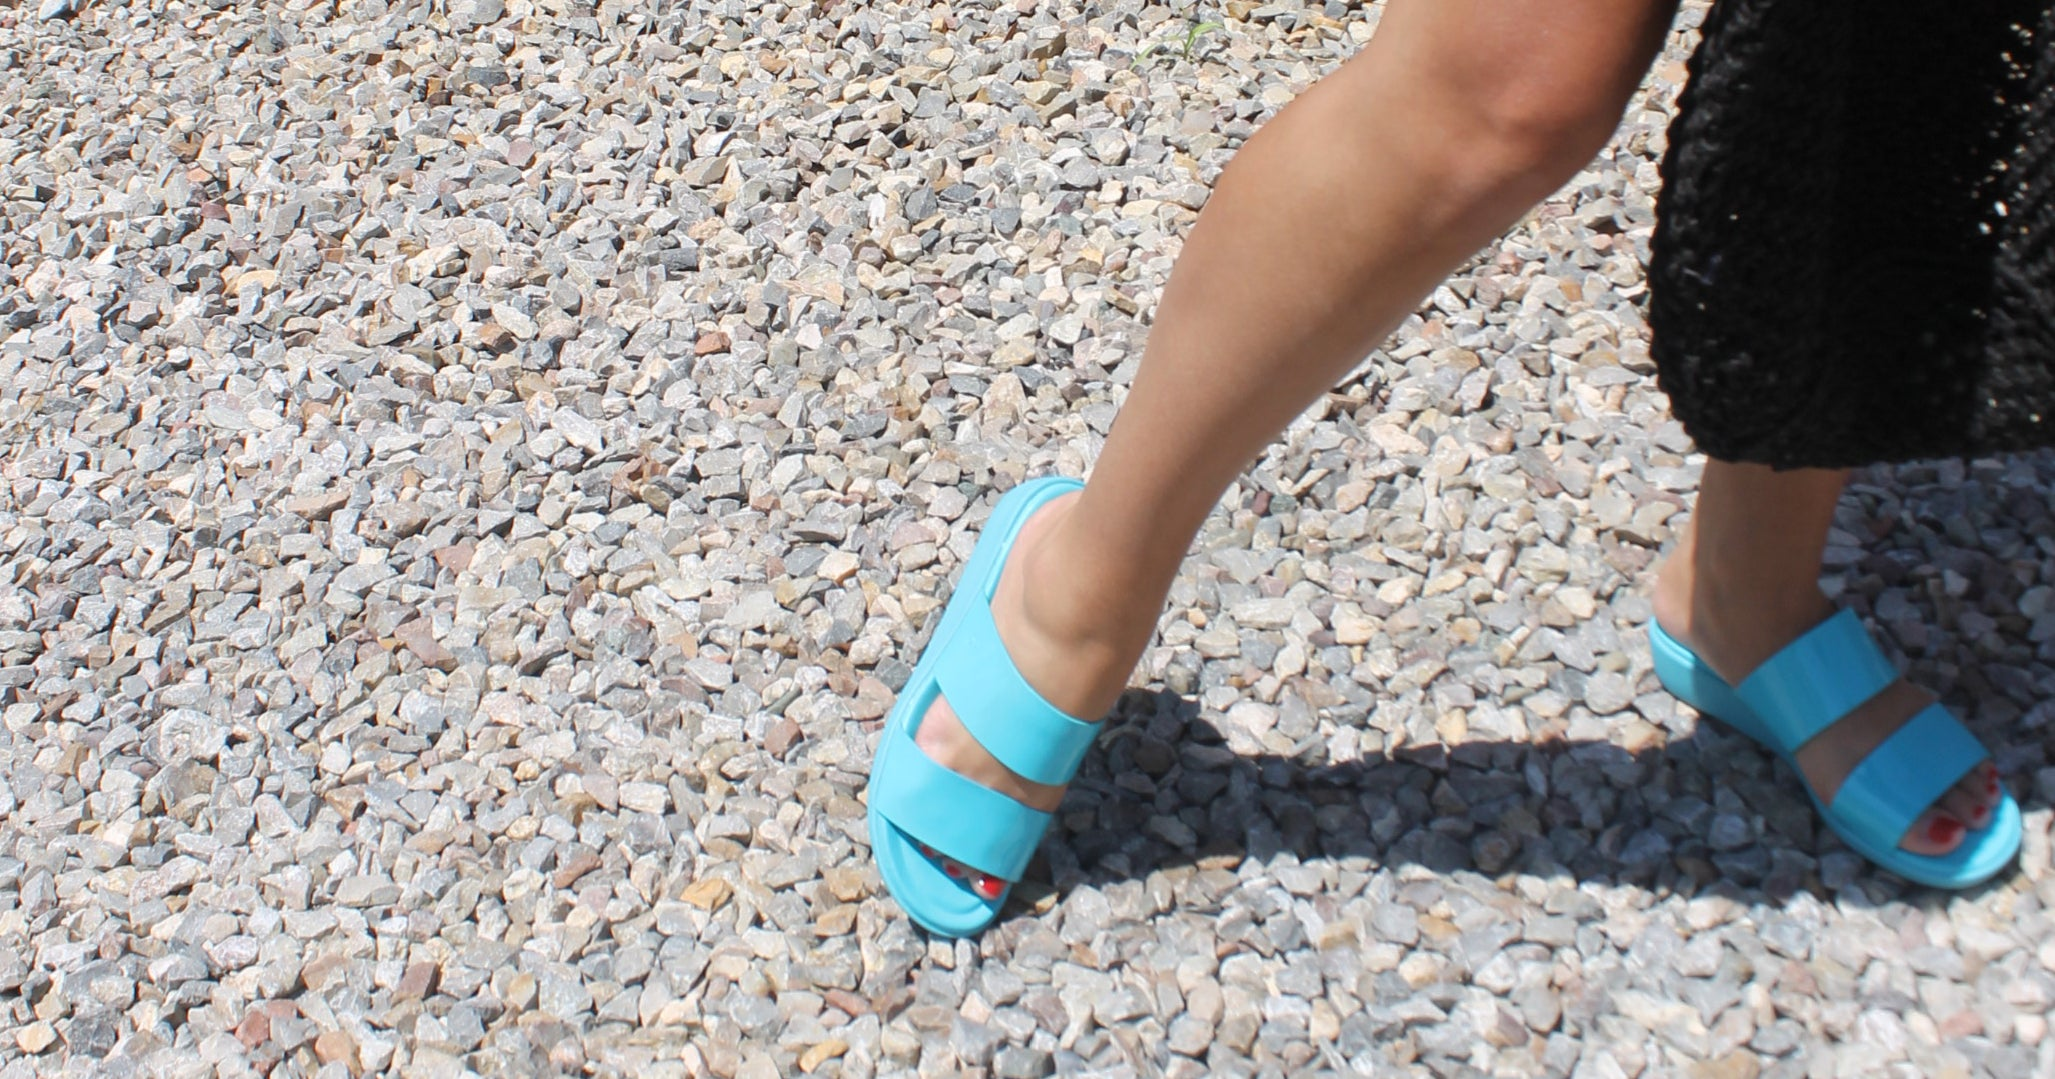 I Wore Jelly Sandals For A Week So You Don't Have To